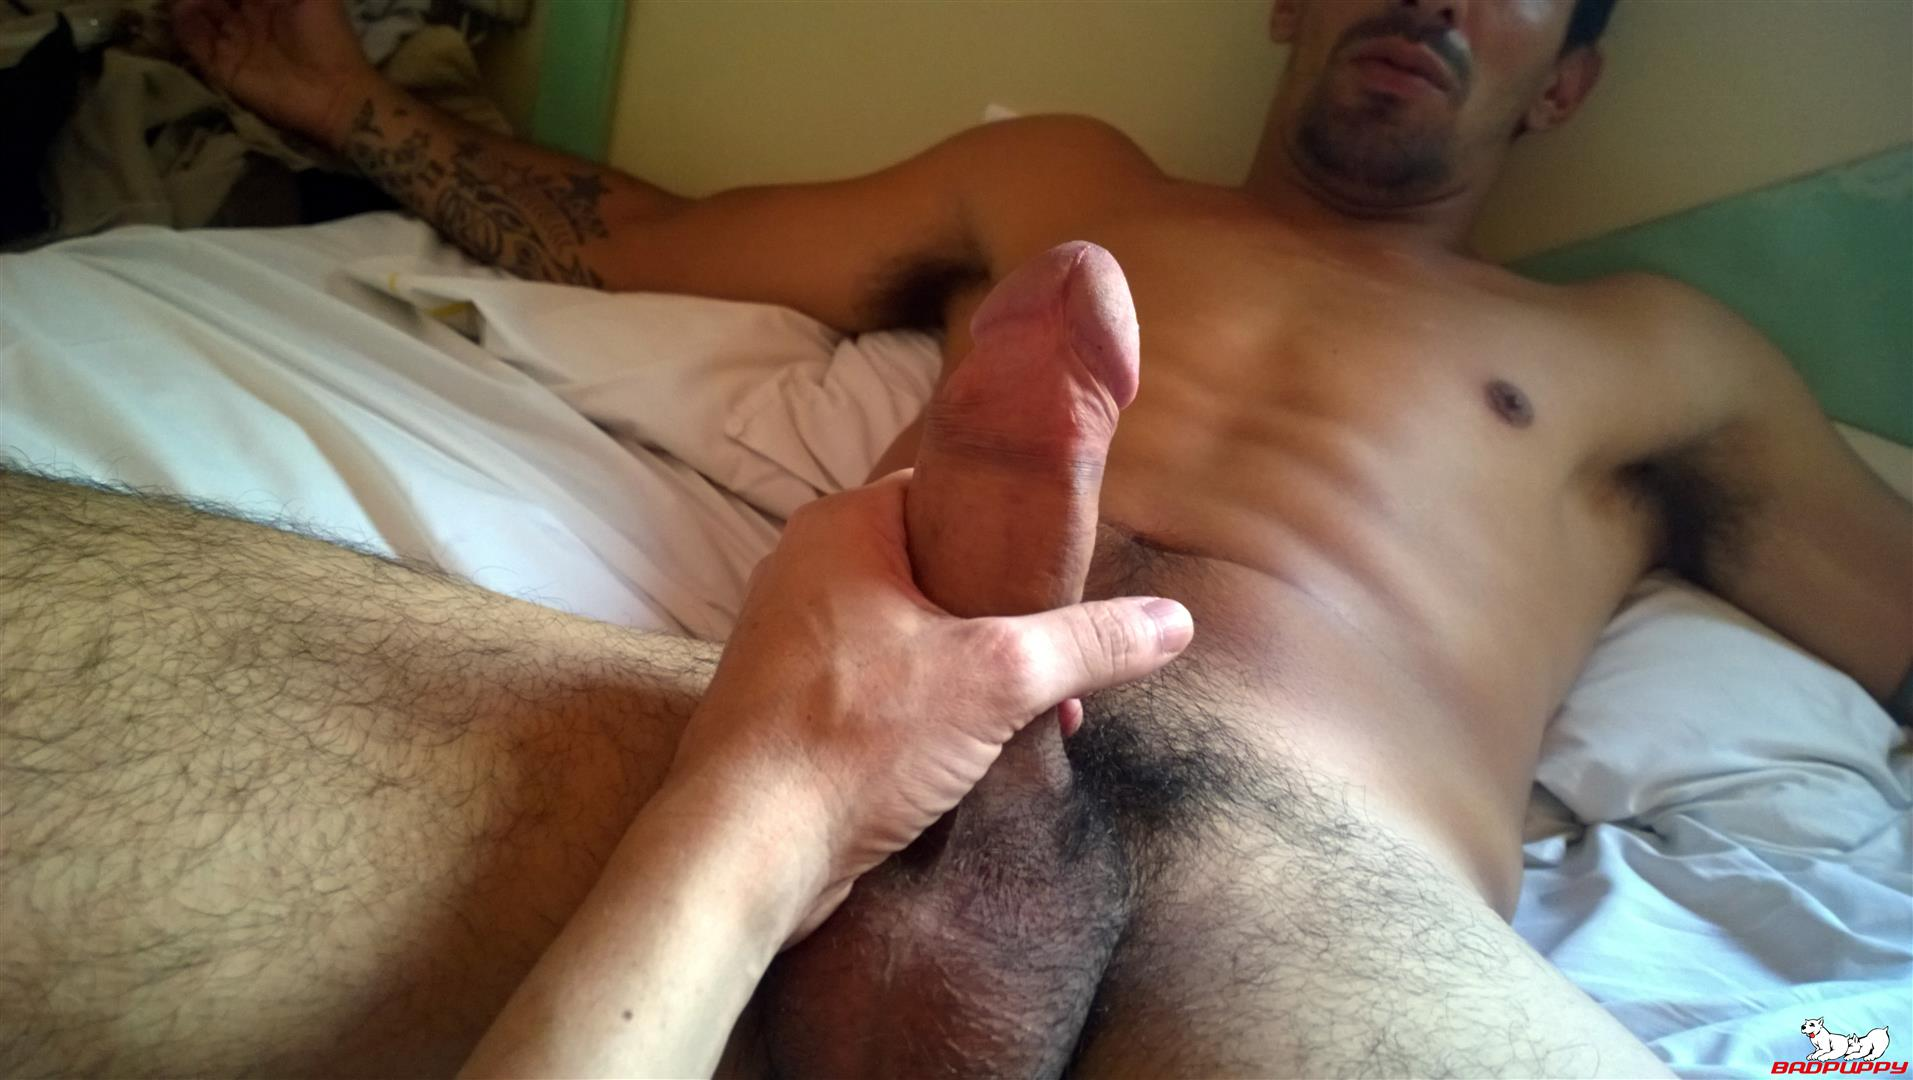 Badpuppy Fabian Flores Argentinian with a Big Uncut Cock 09 Argentinian Hunk With A Big Uncut Cock Auditions For Gay Porn